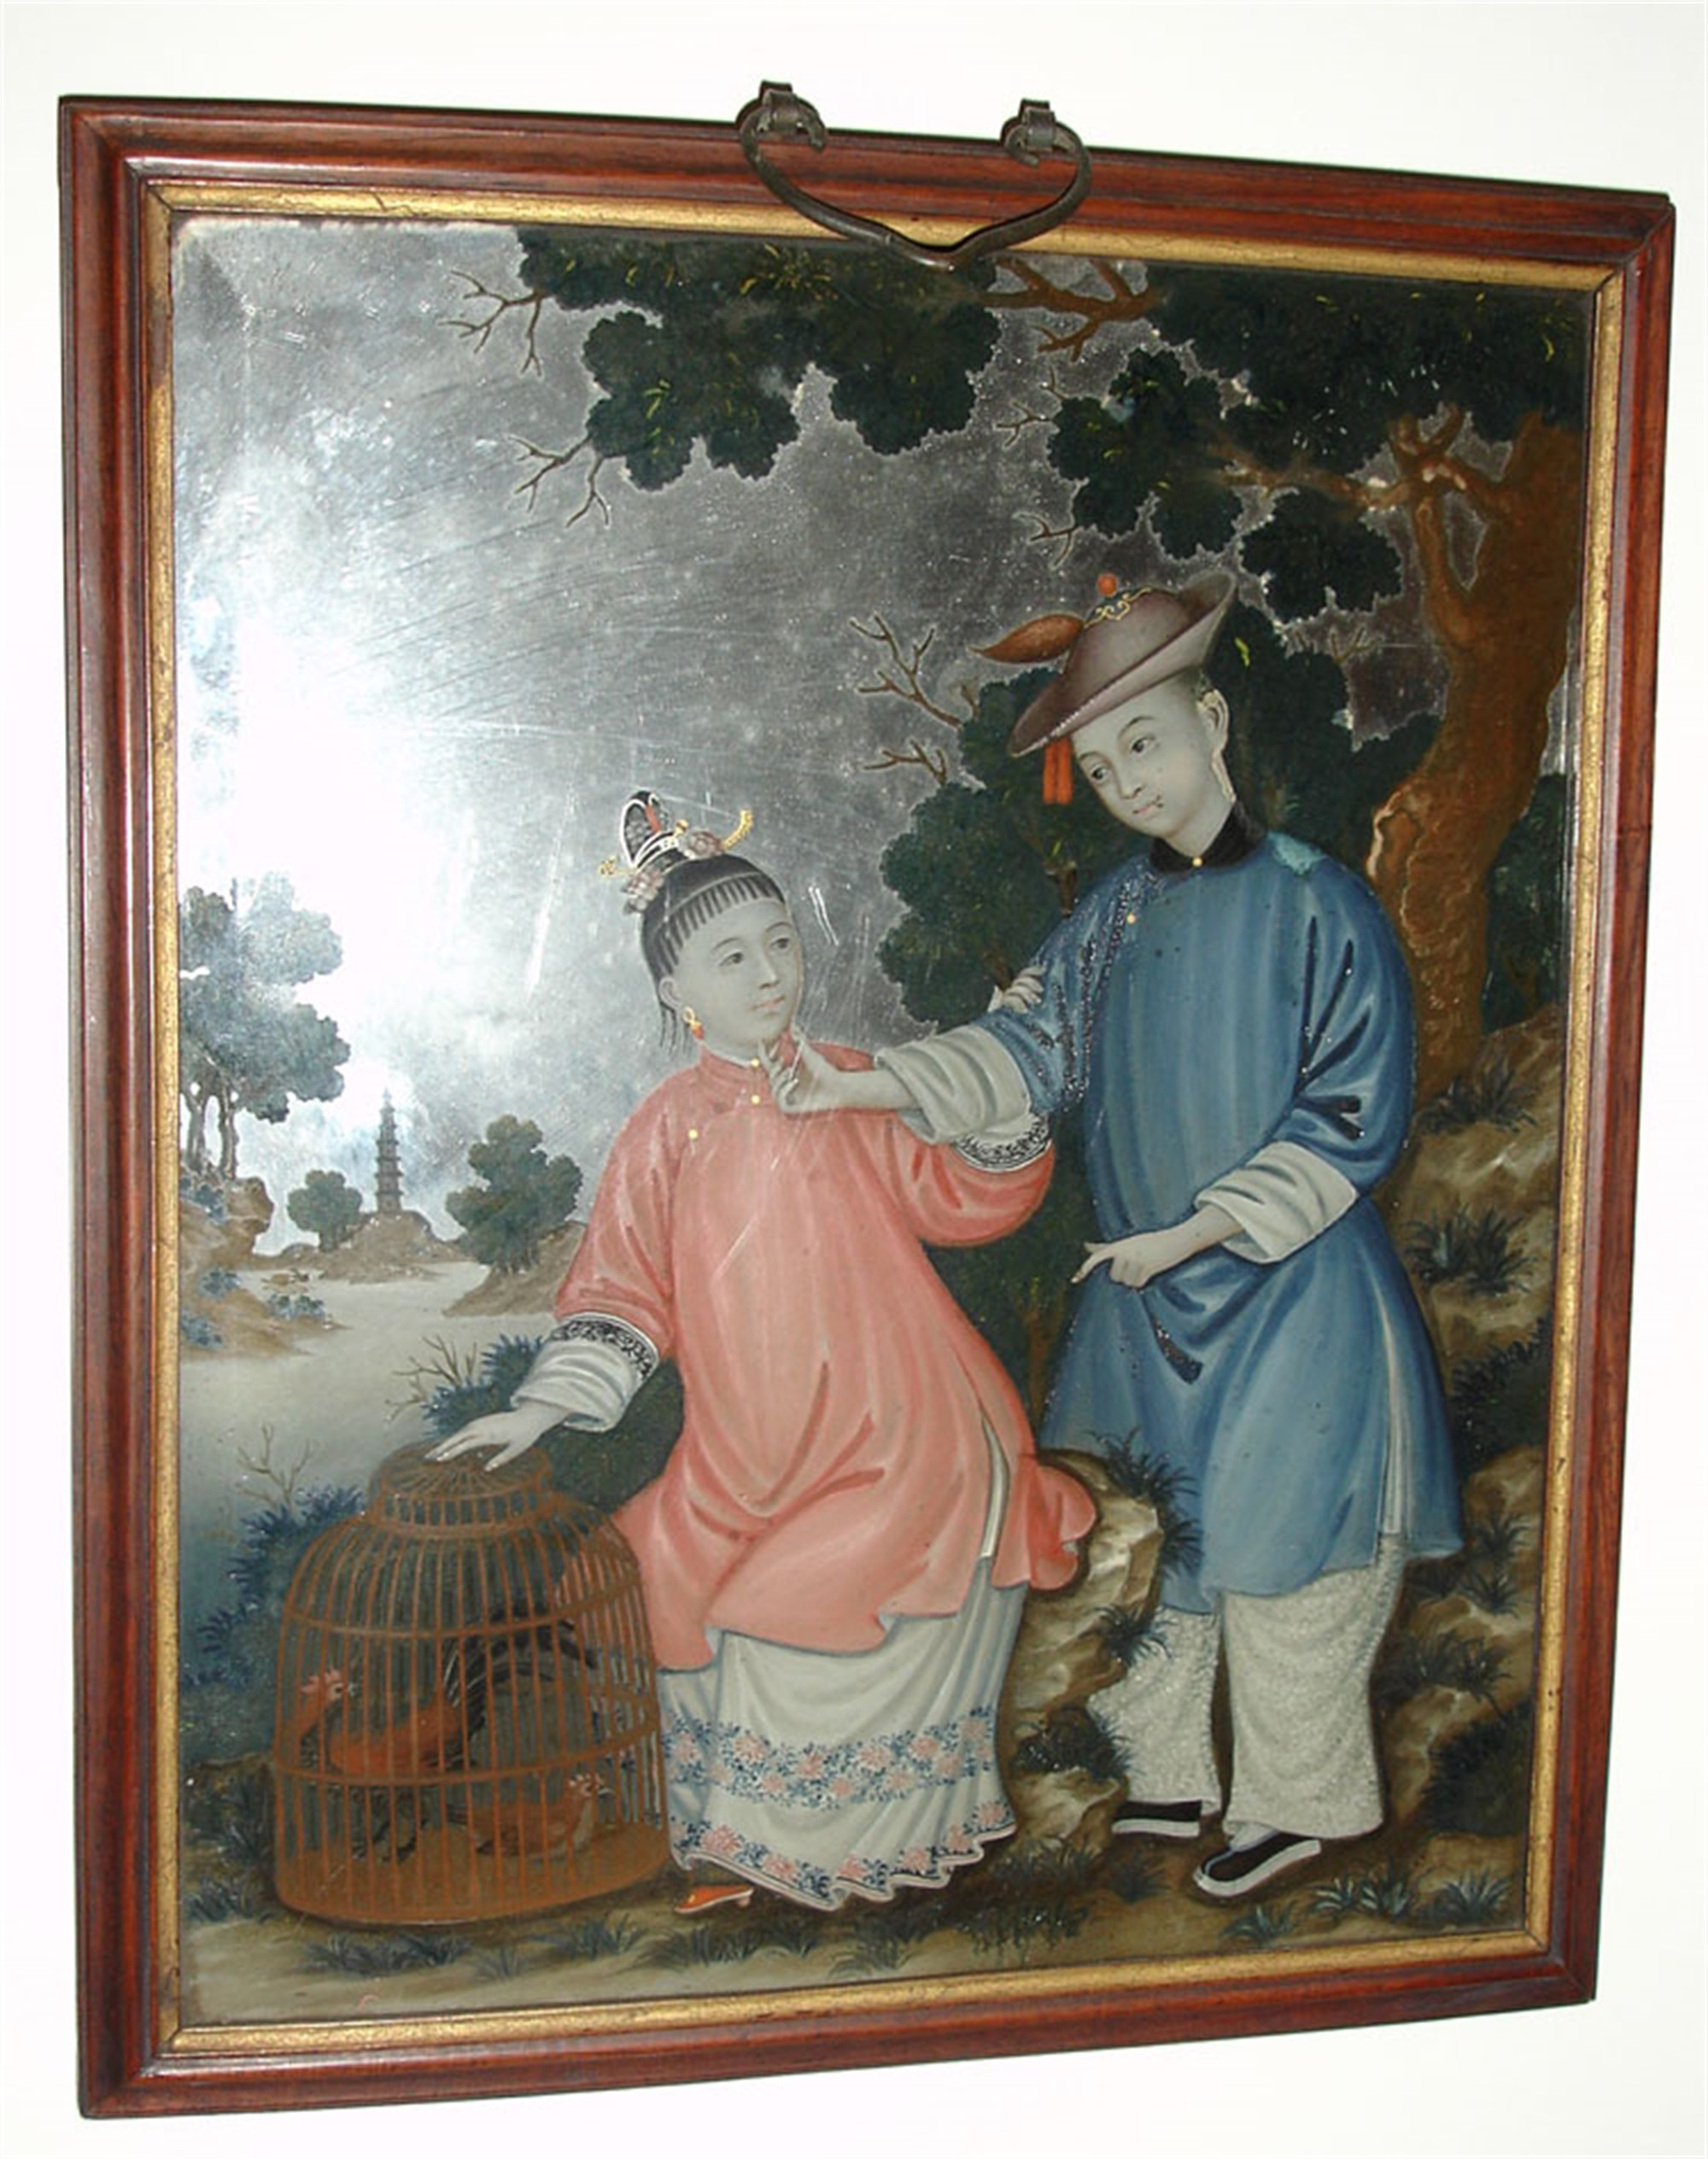 CHINESE REVERSE PAINTING ON GLASS WITH A COUPLE AND COCKERELS IN CAGE